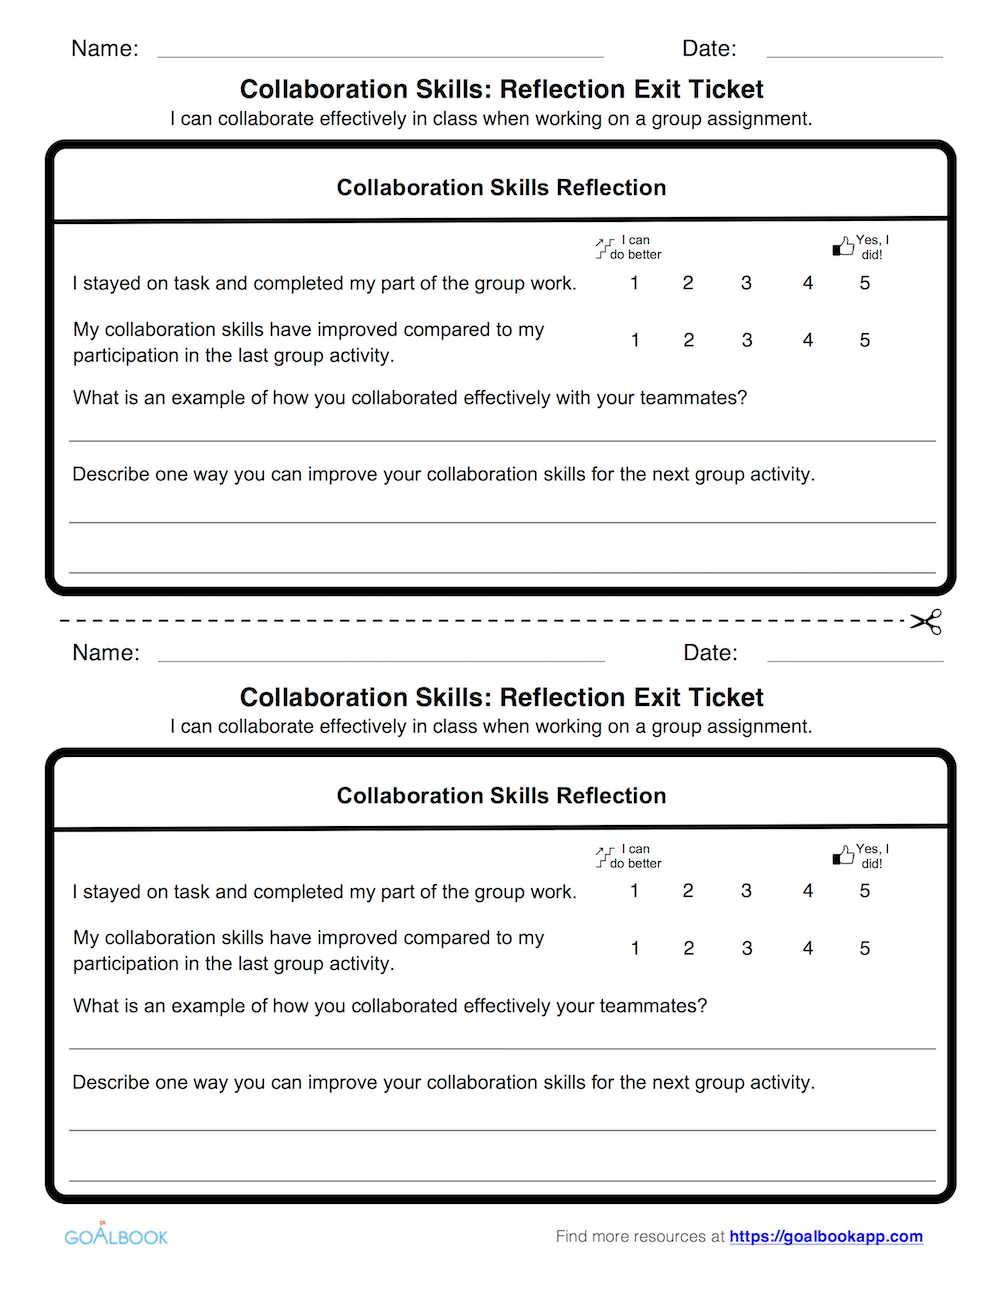 Collaboration Skills: Reflection Exit Ticket